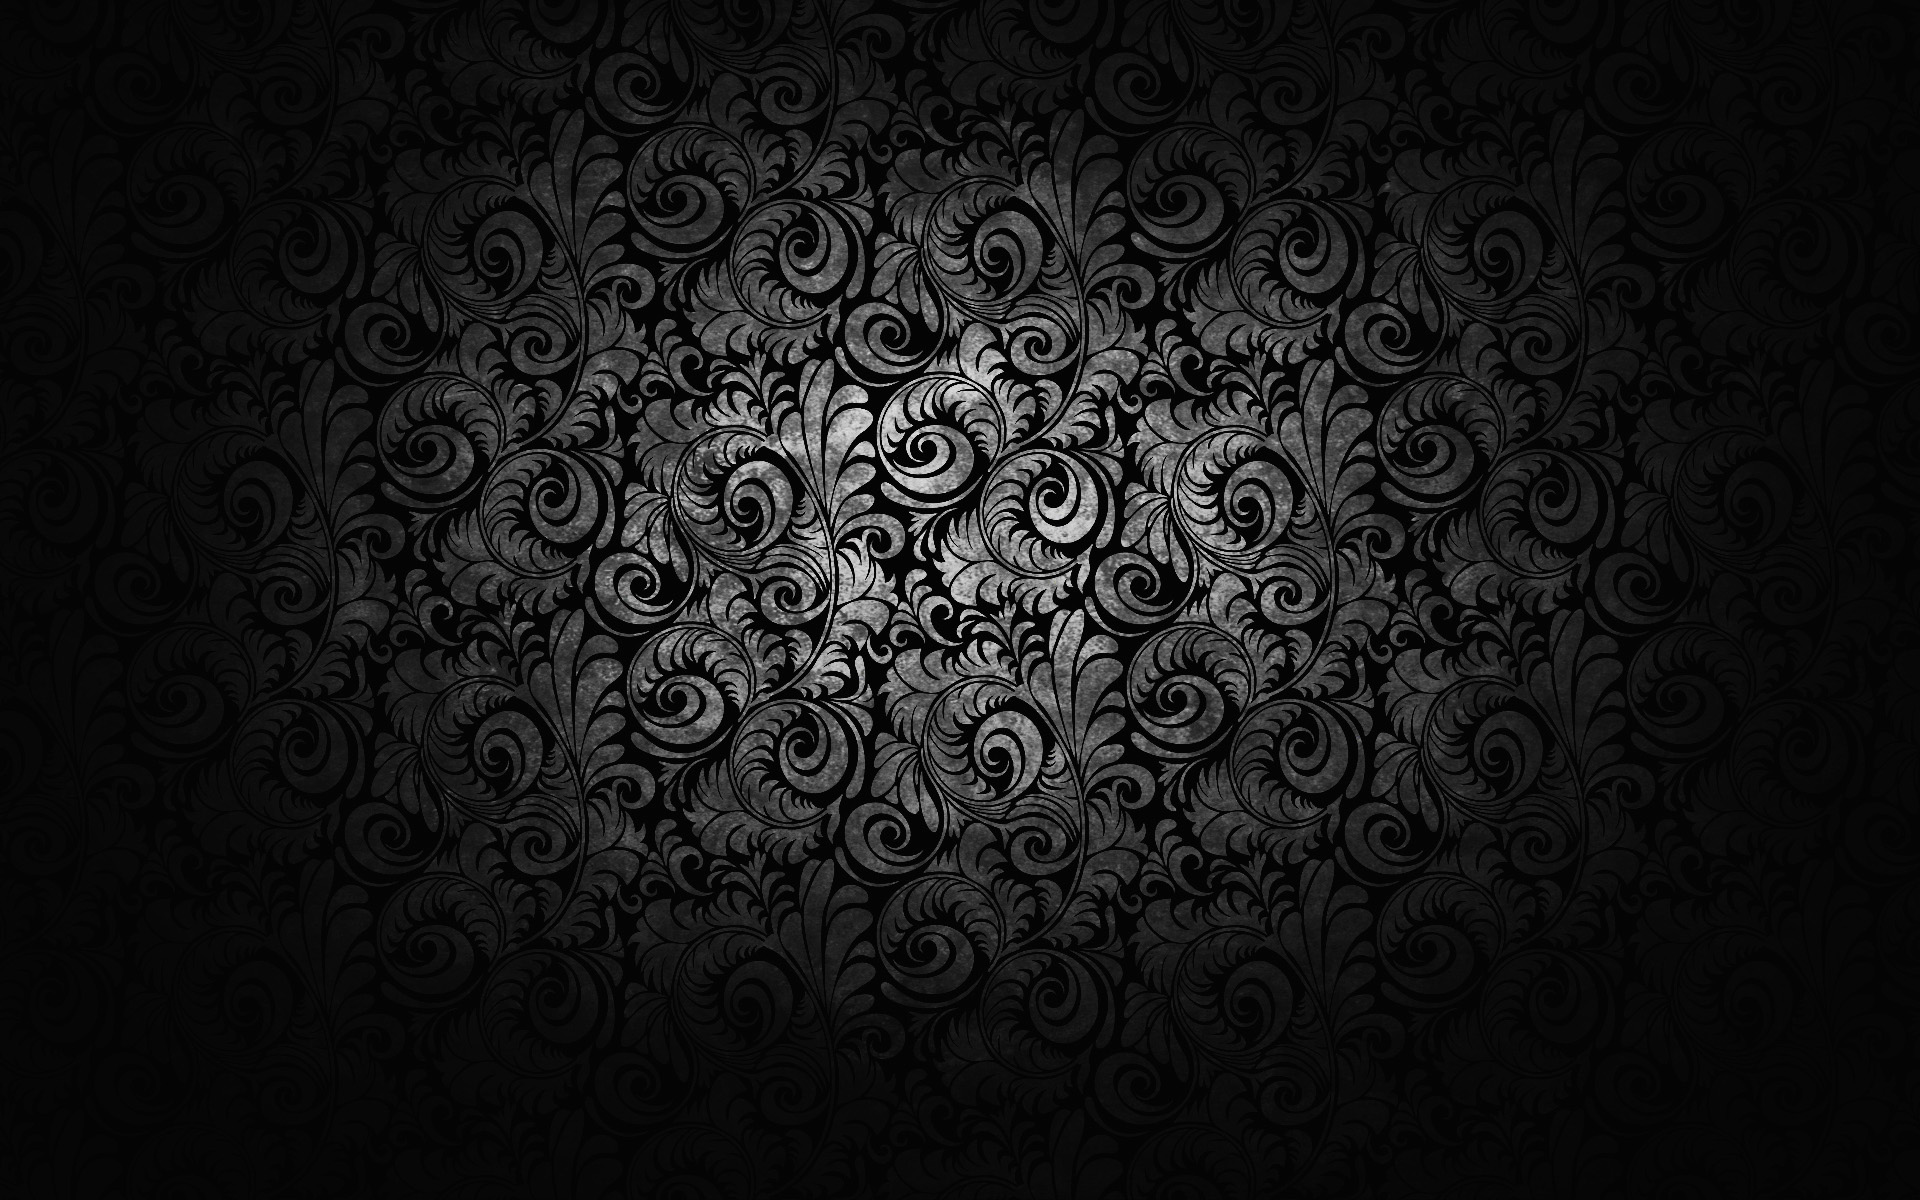 49 Black Floral Wallpaper Images On Wallpapersafari